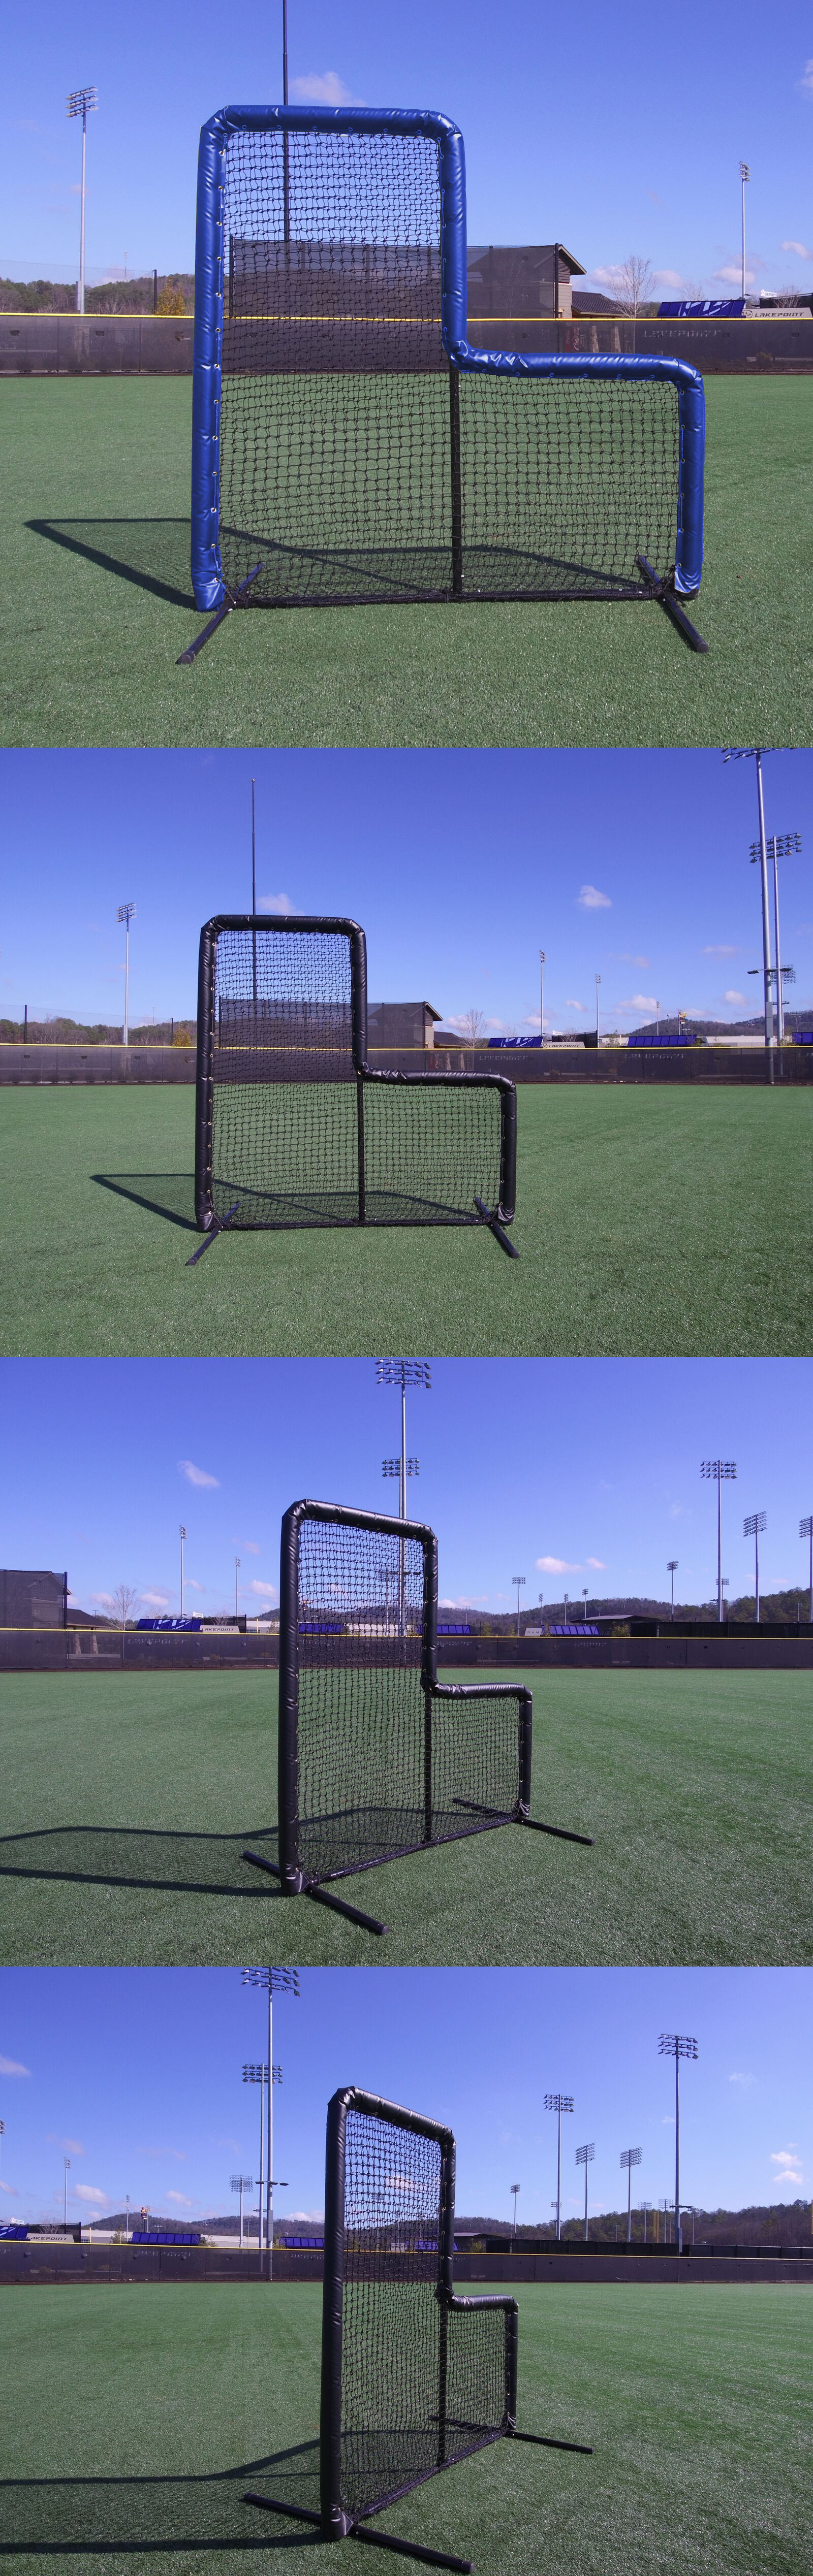 batting cages and netting 50809 7 x 7 armor baseball softball